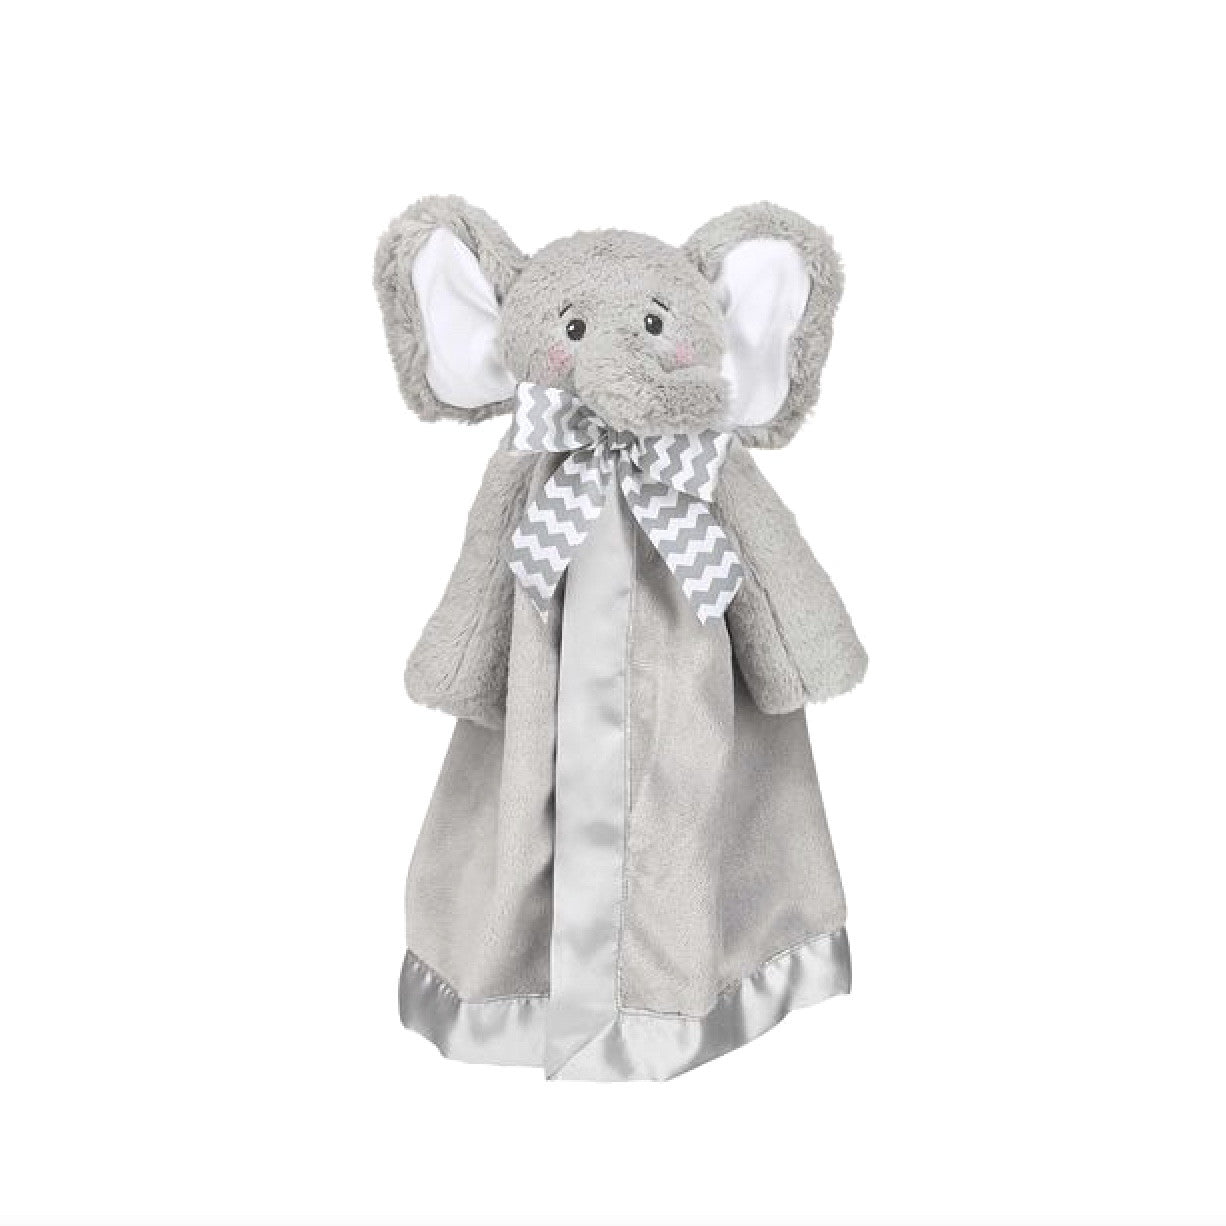 Lil' Spout Elephant - Snuggler -  Children's - BC-Bearington Baby Collection - Bella Flor - Putti Fine Furnishings Toronto Canada